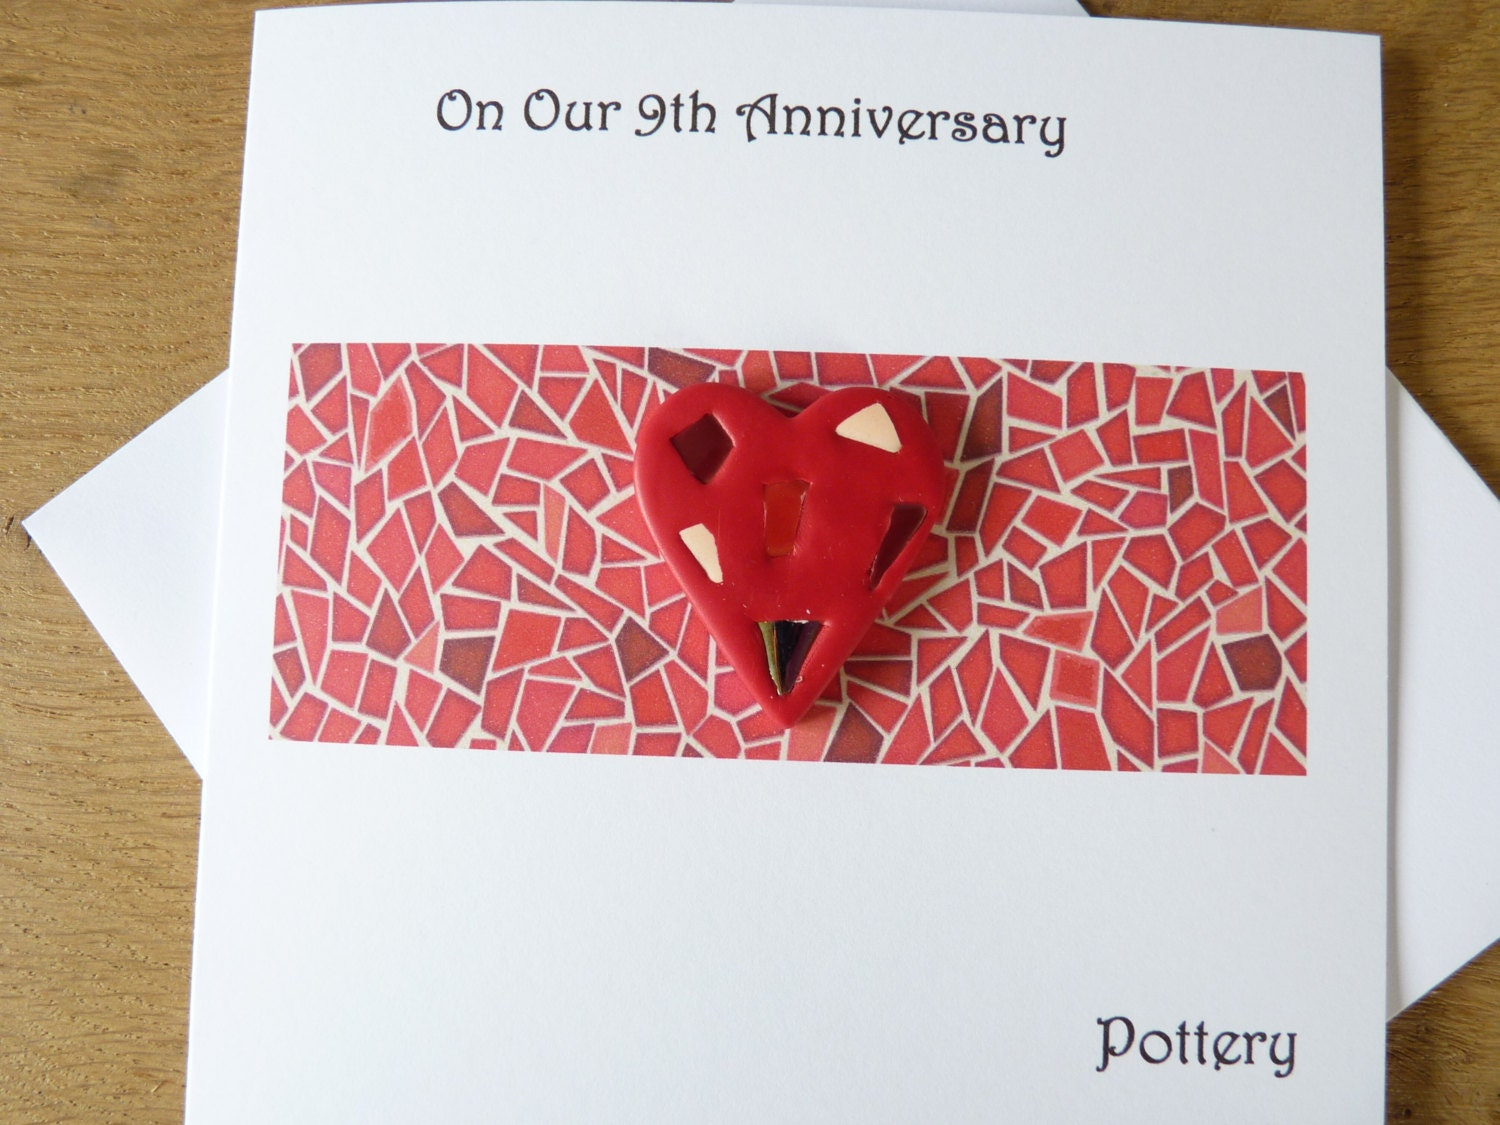 9th Anniversary Pottery For Wedding: 9th Wedding Anniversary Card Pottery Ninth By